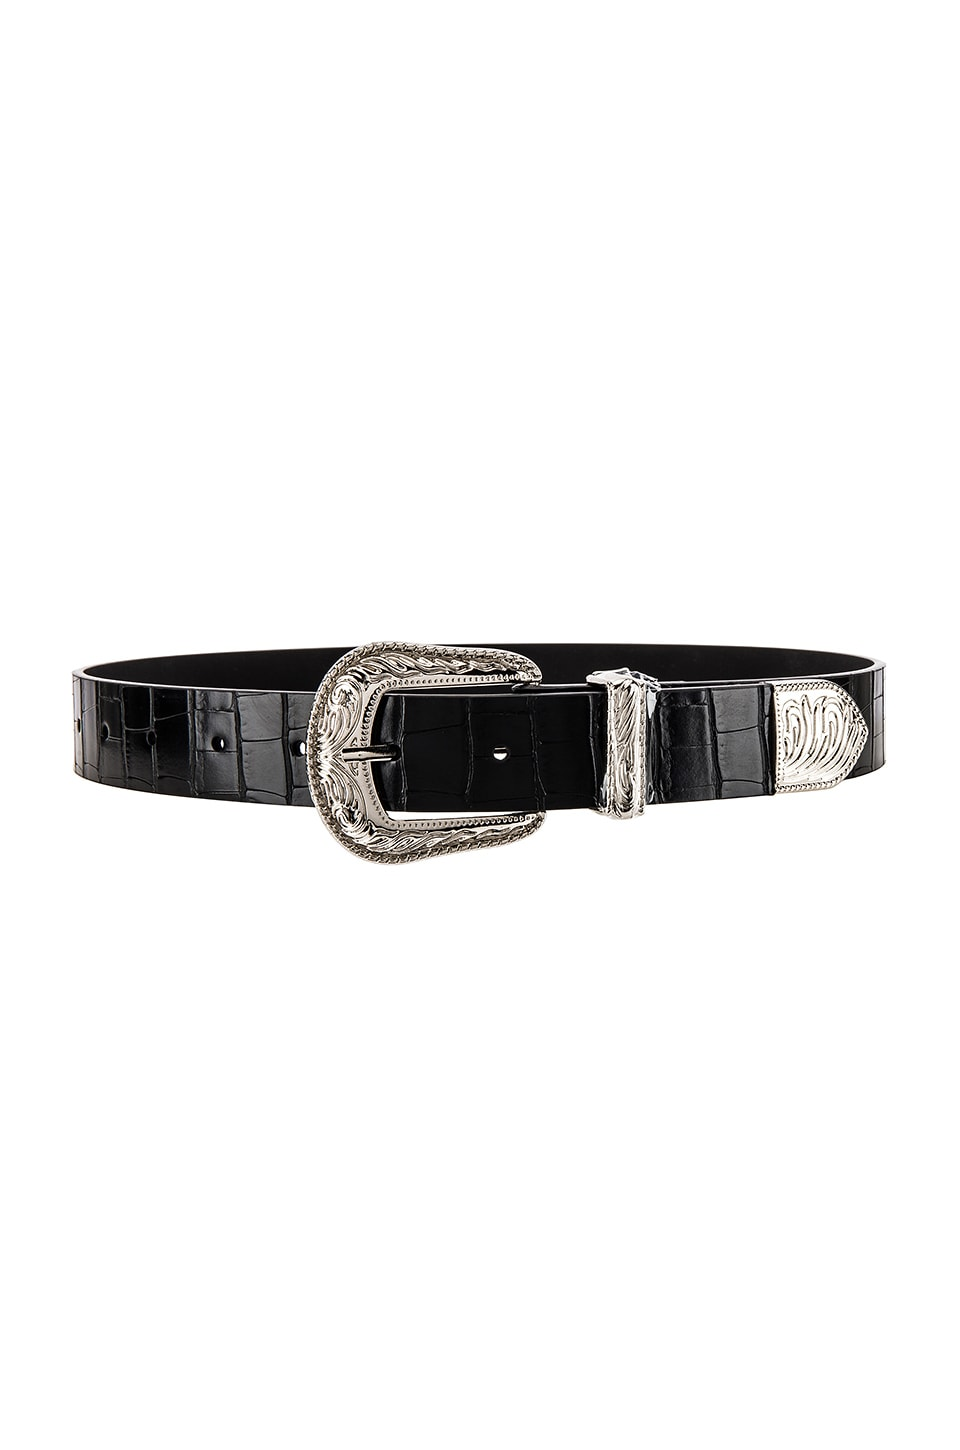 Lovers + Friends Venom Croco Belt in Black